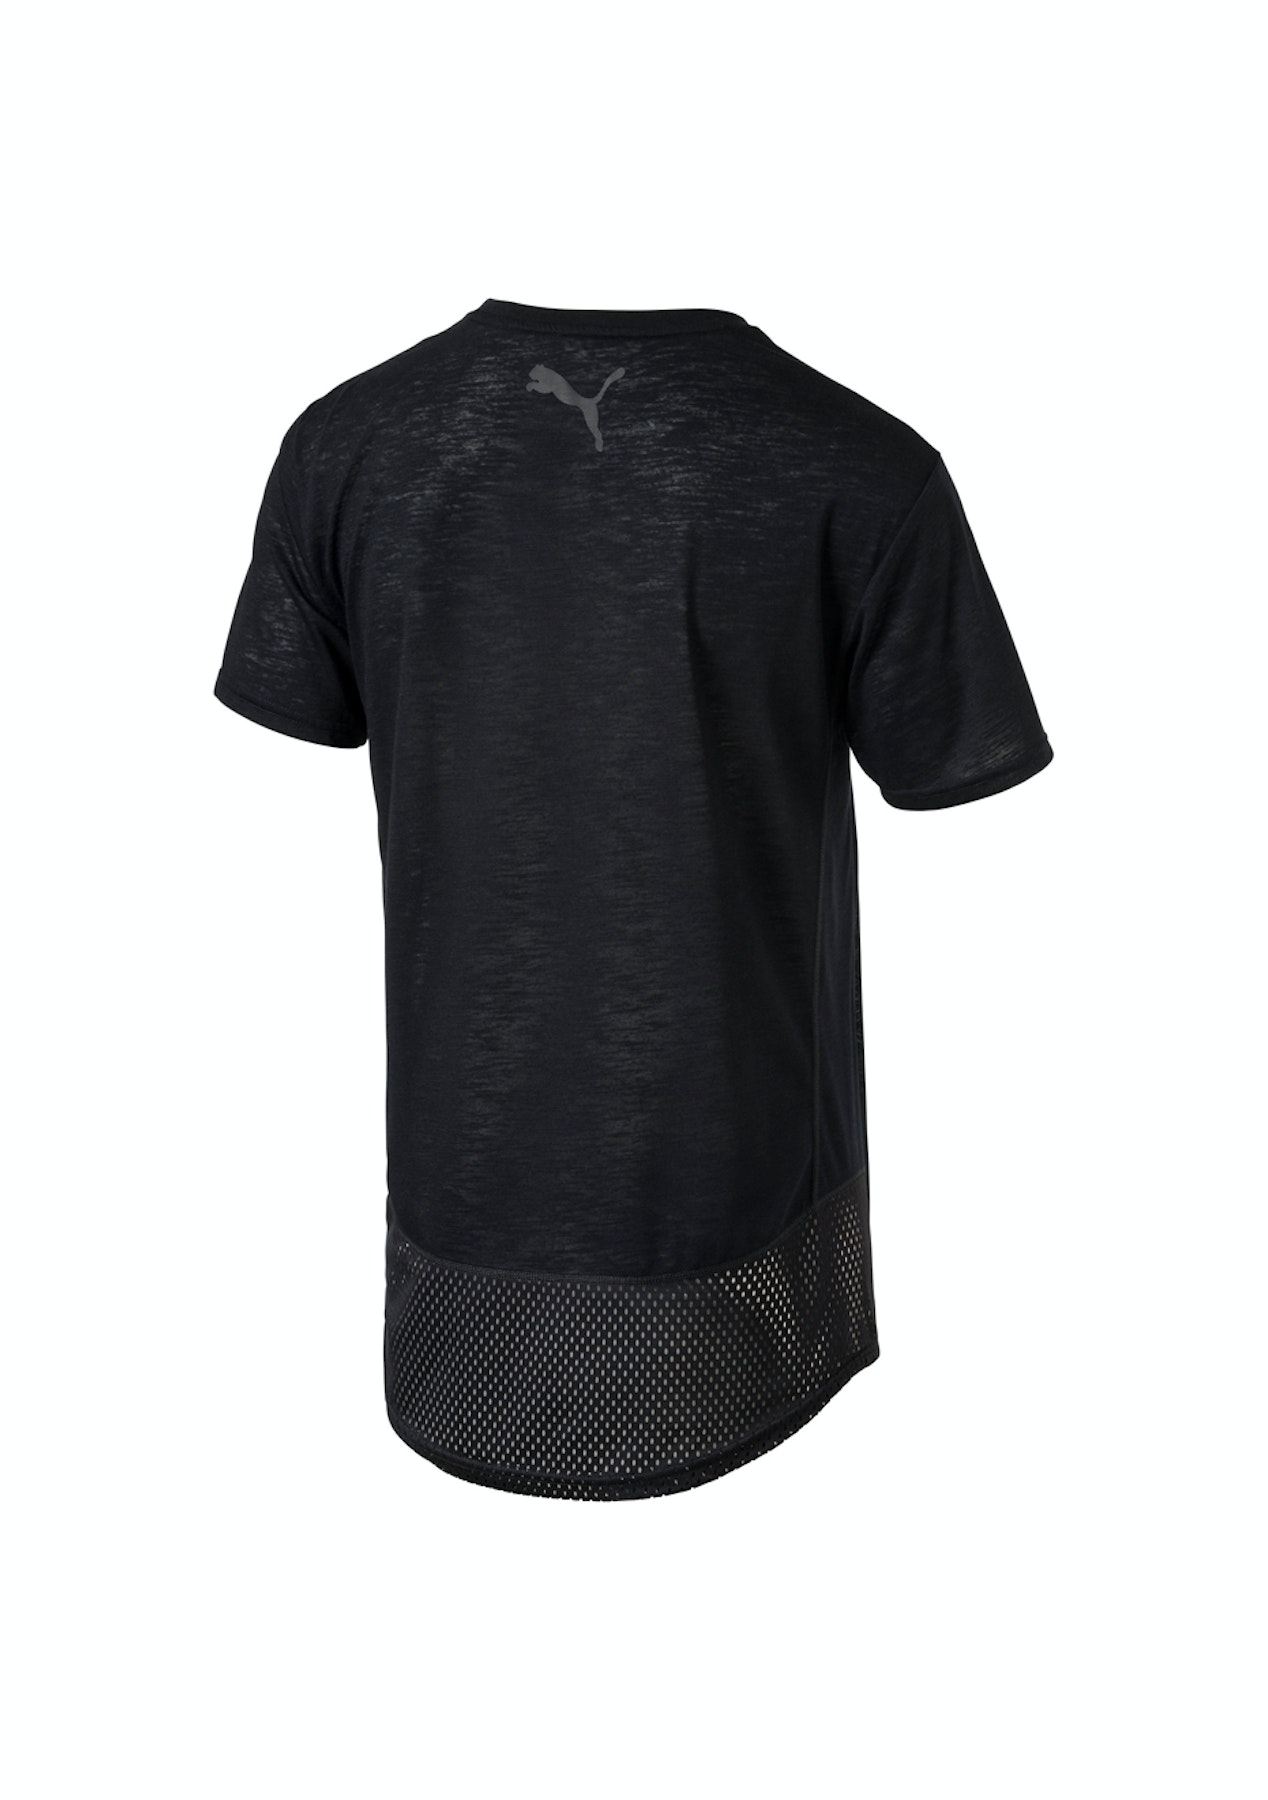 eb4c6de92 Puma Mens - Dri-Release Novelty Graphic Tee - Black - Onceit's Gone It's  Gone Mens - Onceit